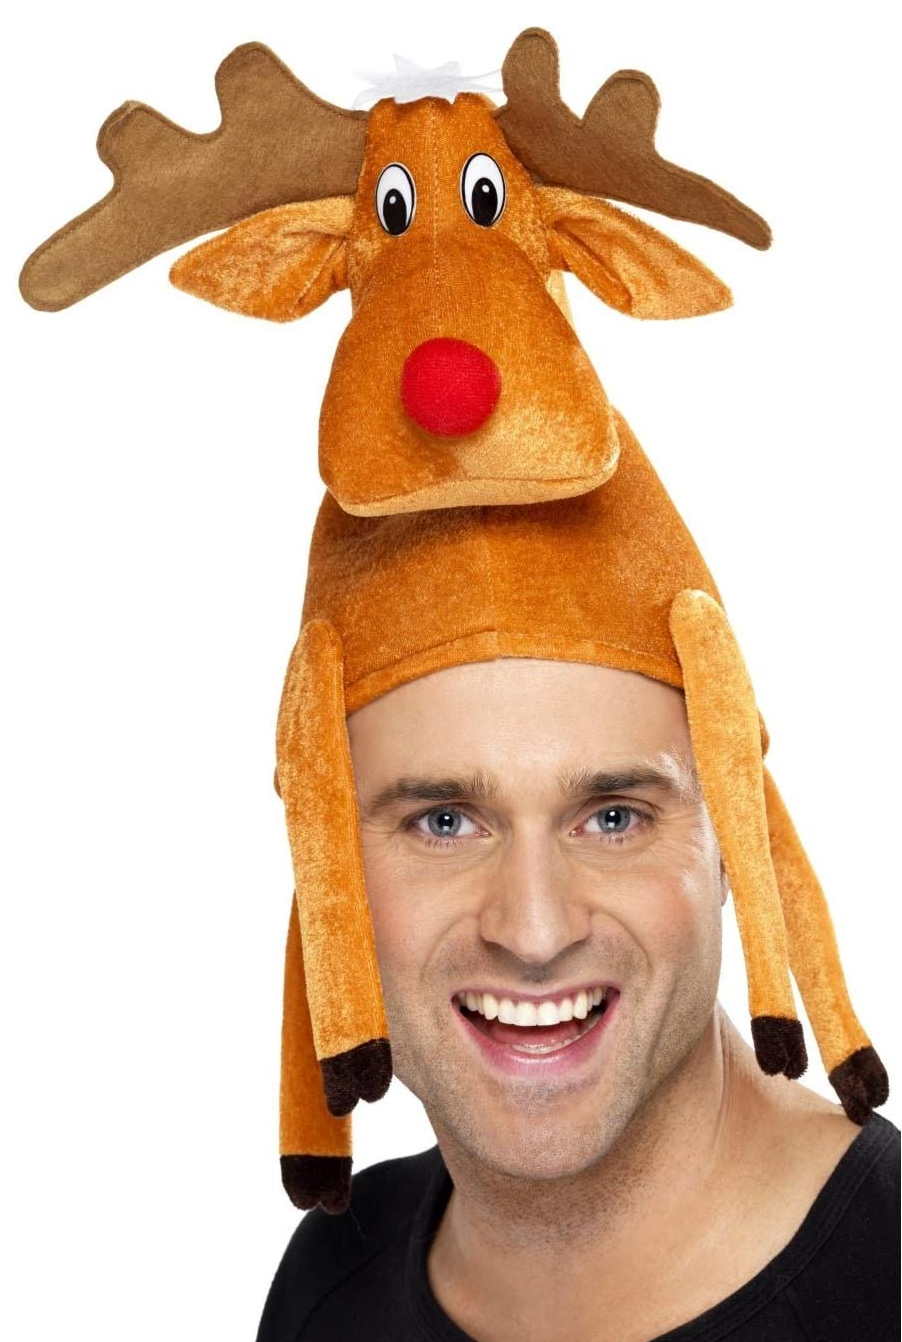 The Best Christmas Hats 2019. Reindeer Hats 2019. Funny Christmas 2019. Christmas Party Outfit ideas 2019. Christmas Hats for the Office Party 2019. Christmas Jumper Day 2019. Best Christmas outfits. Secret Santa Gifts 2019.